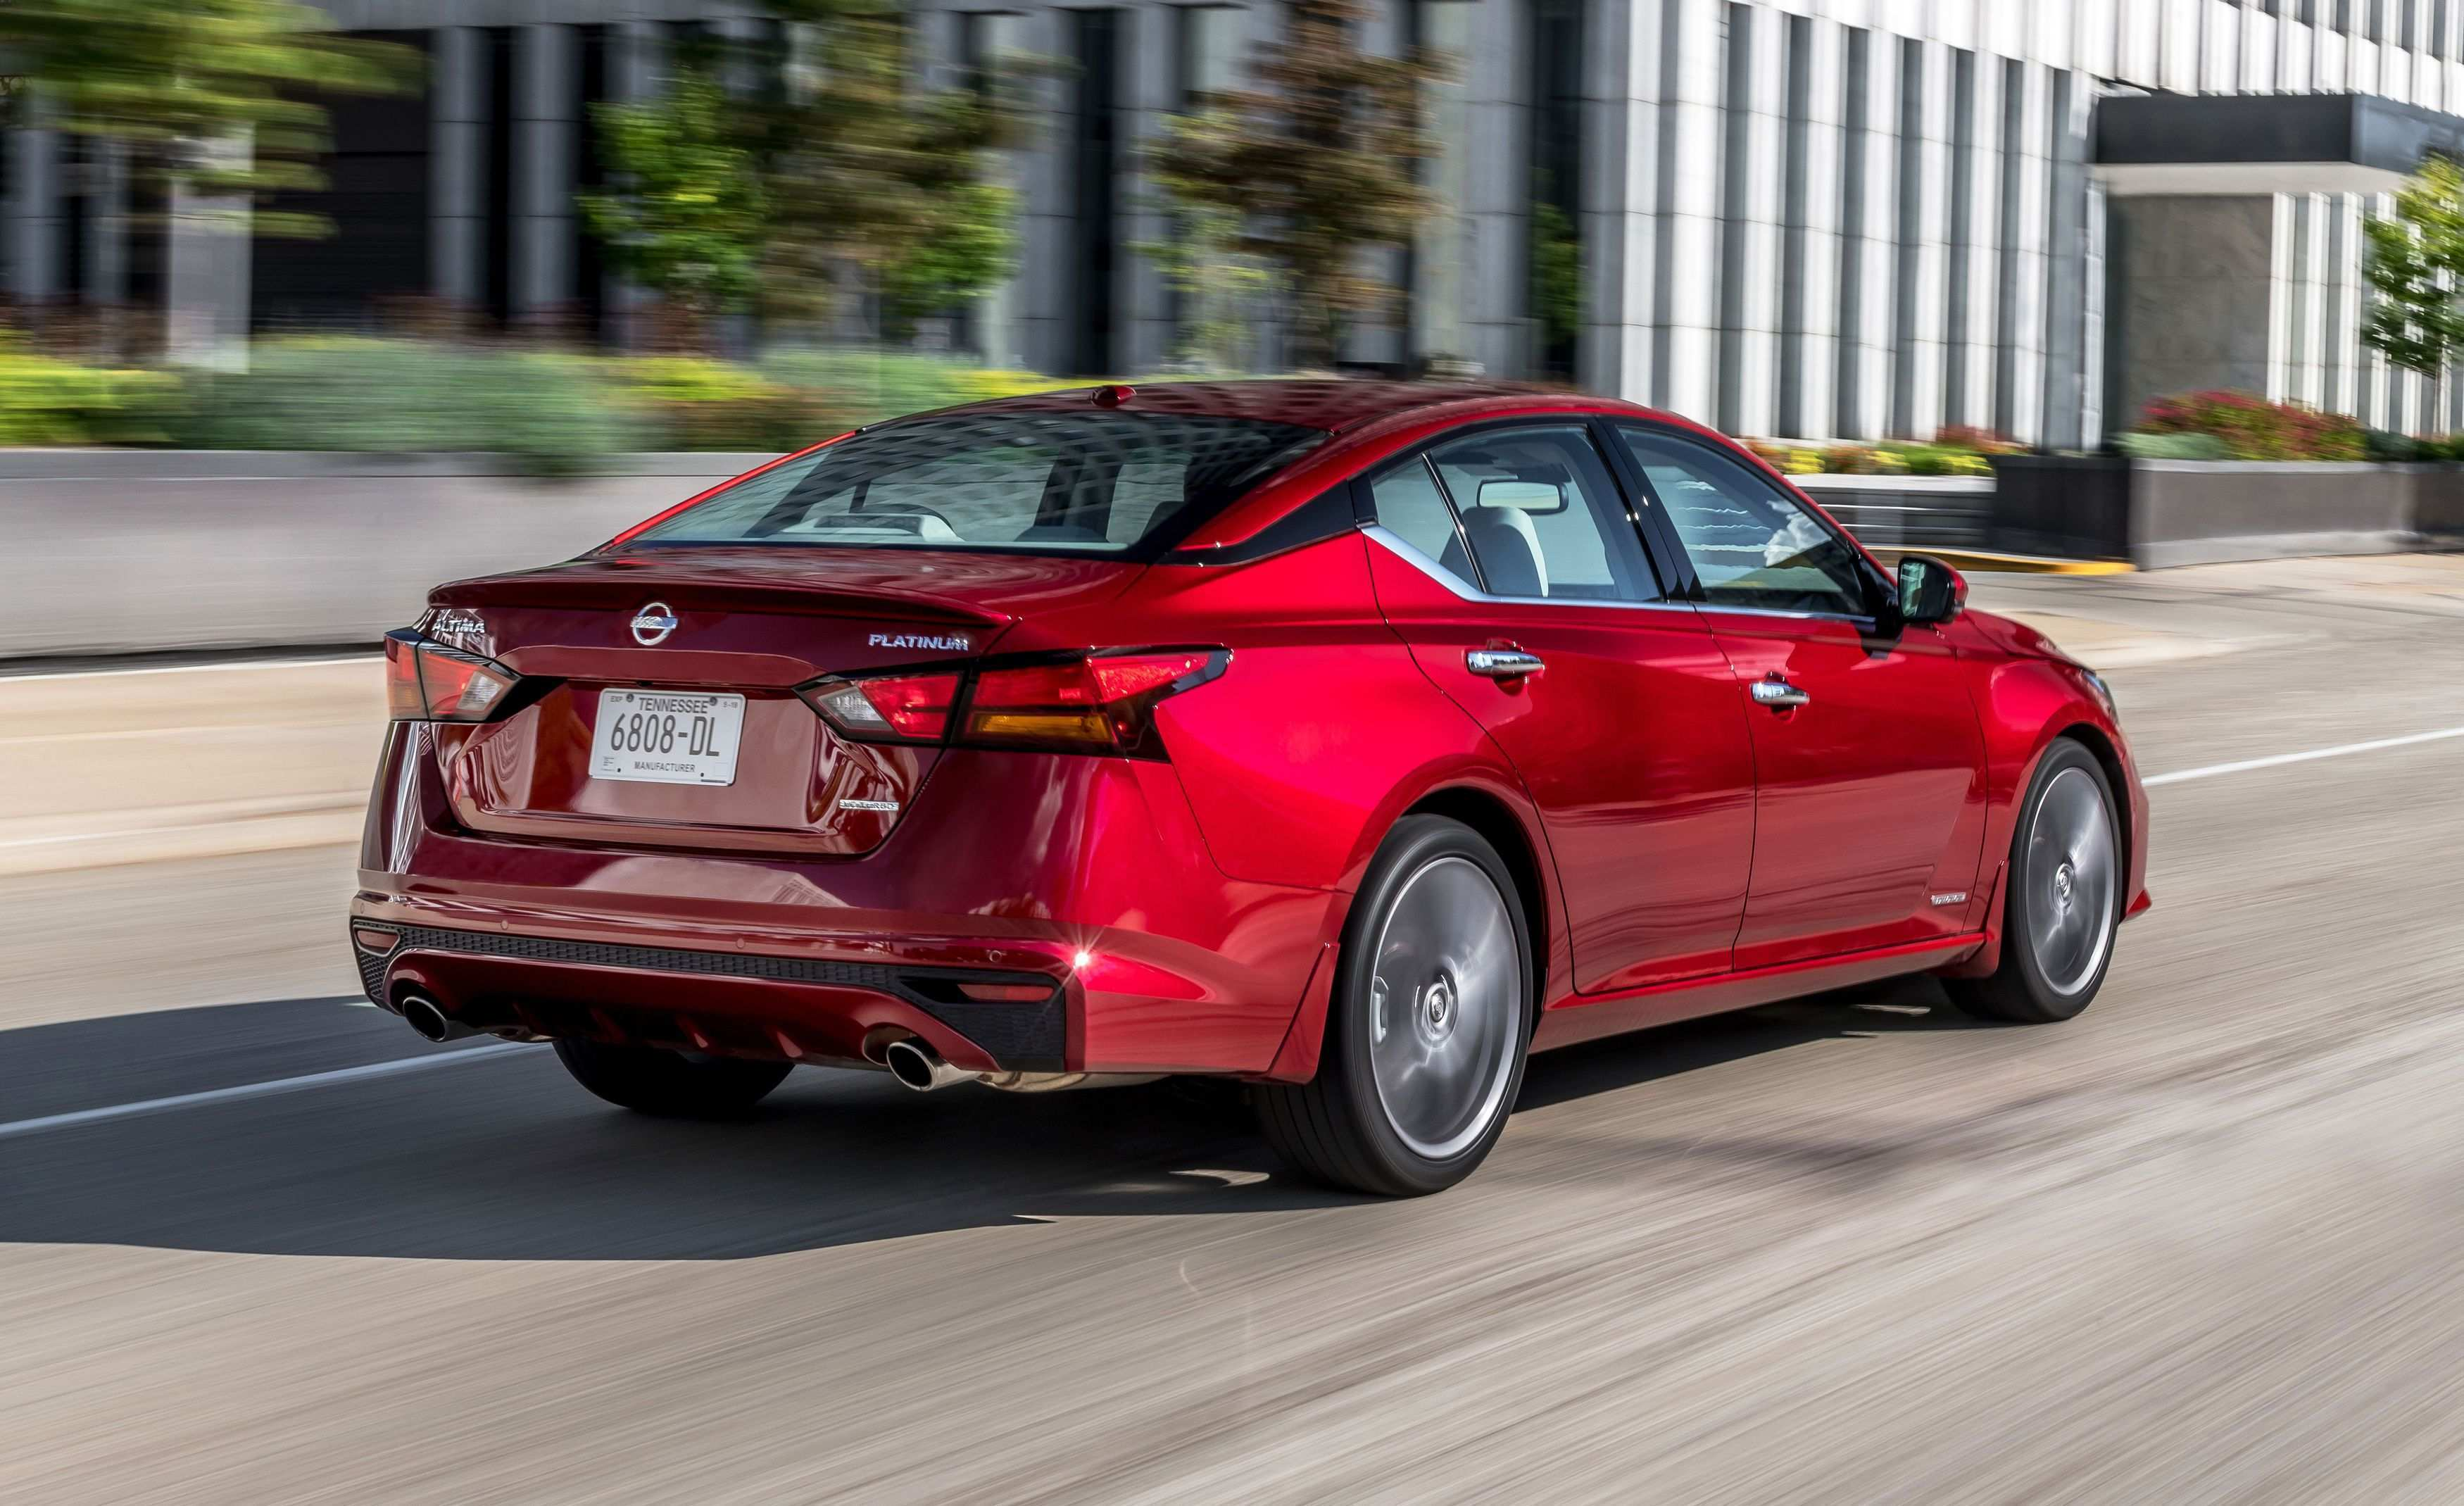 70 Best Nissan Altima 2019 Horsepower Performance